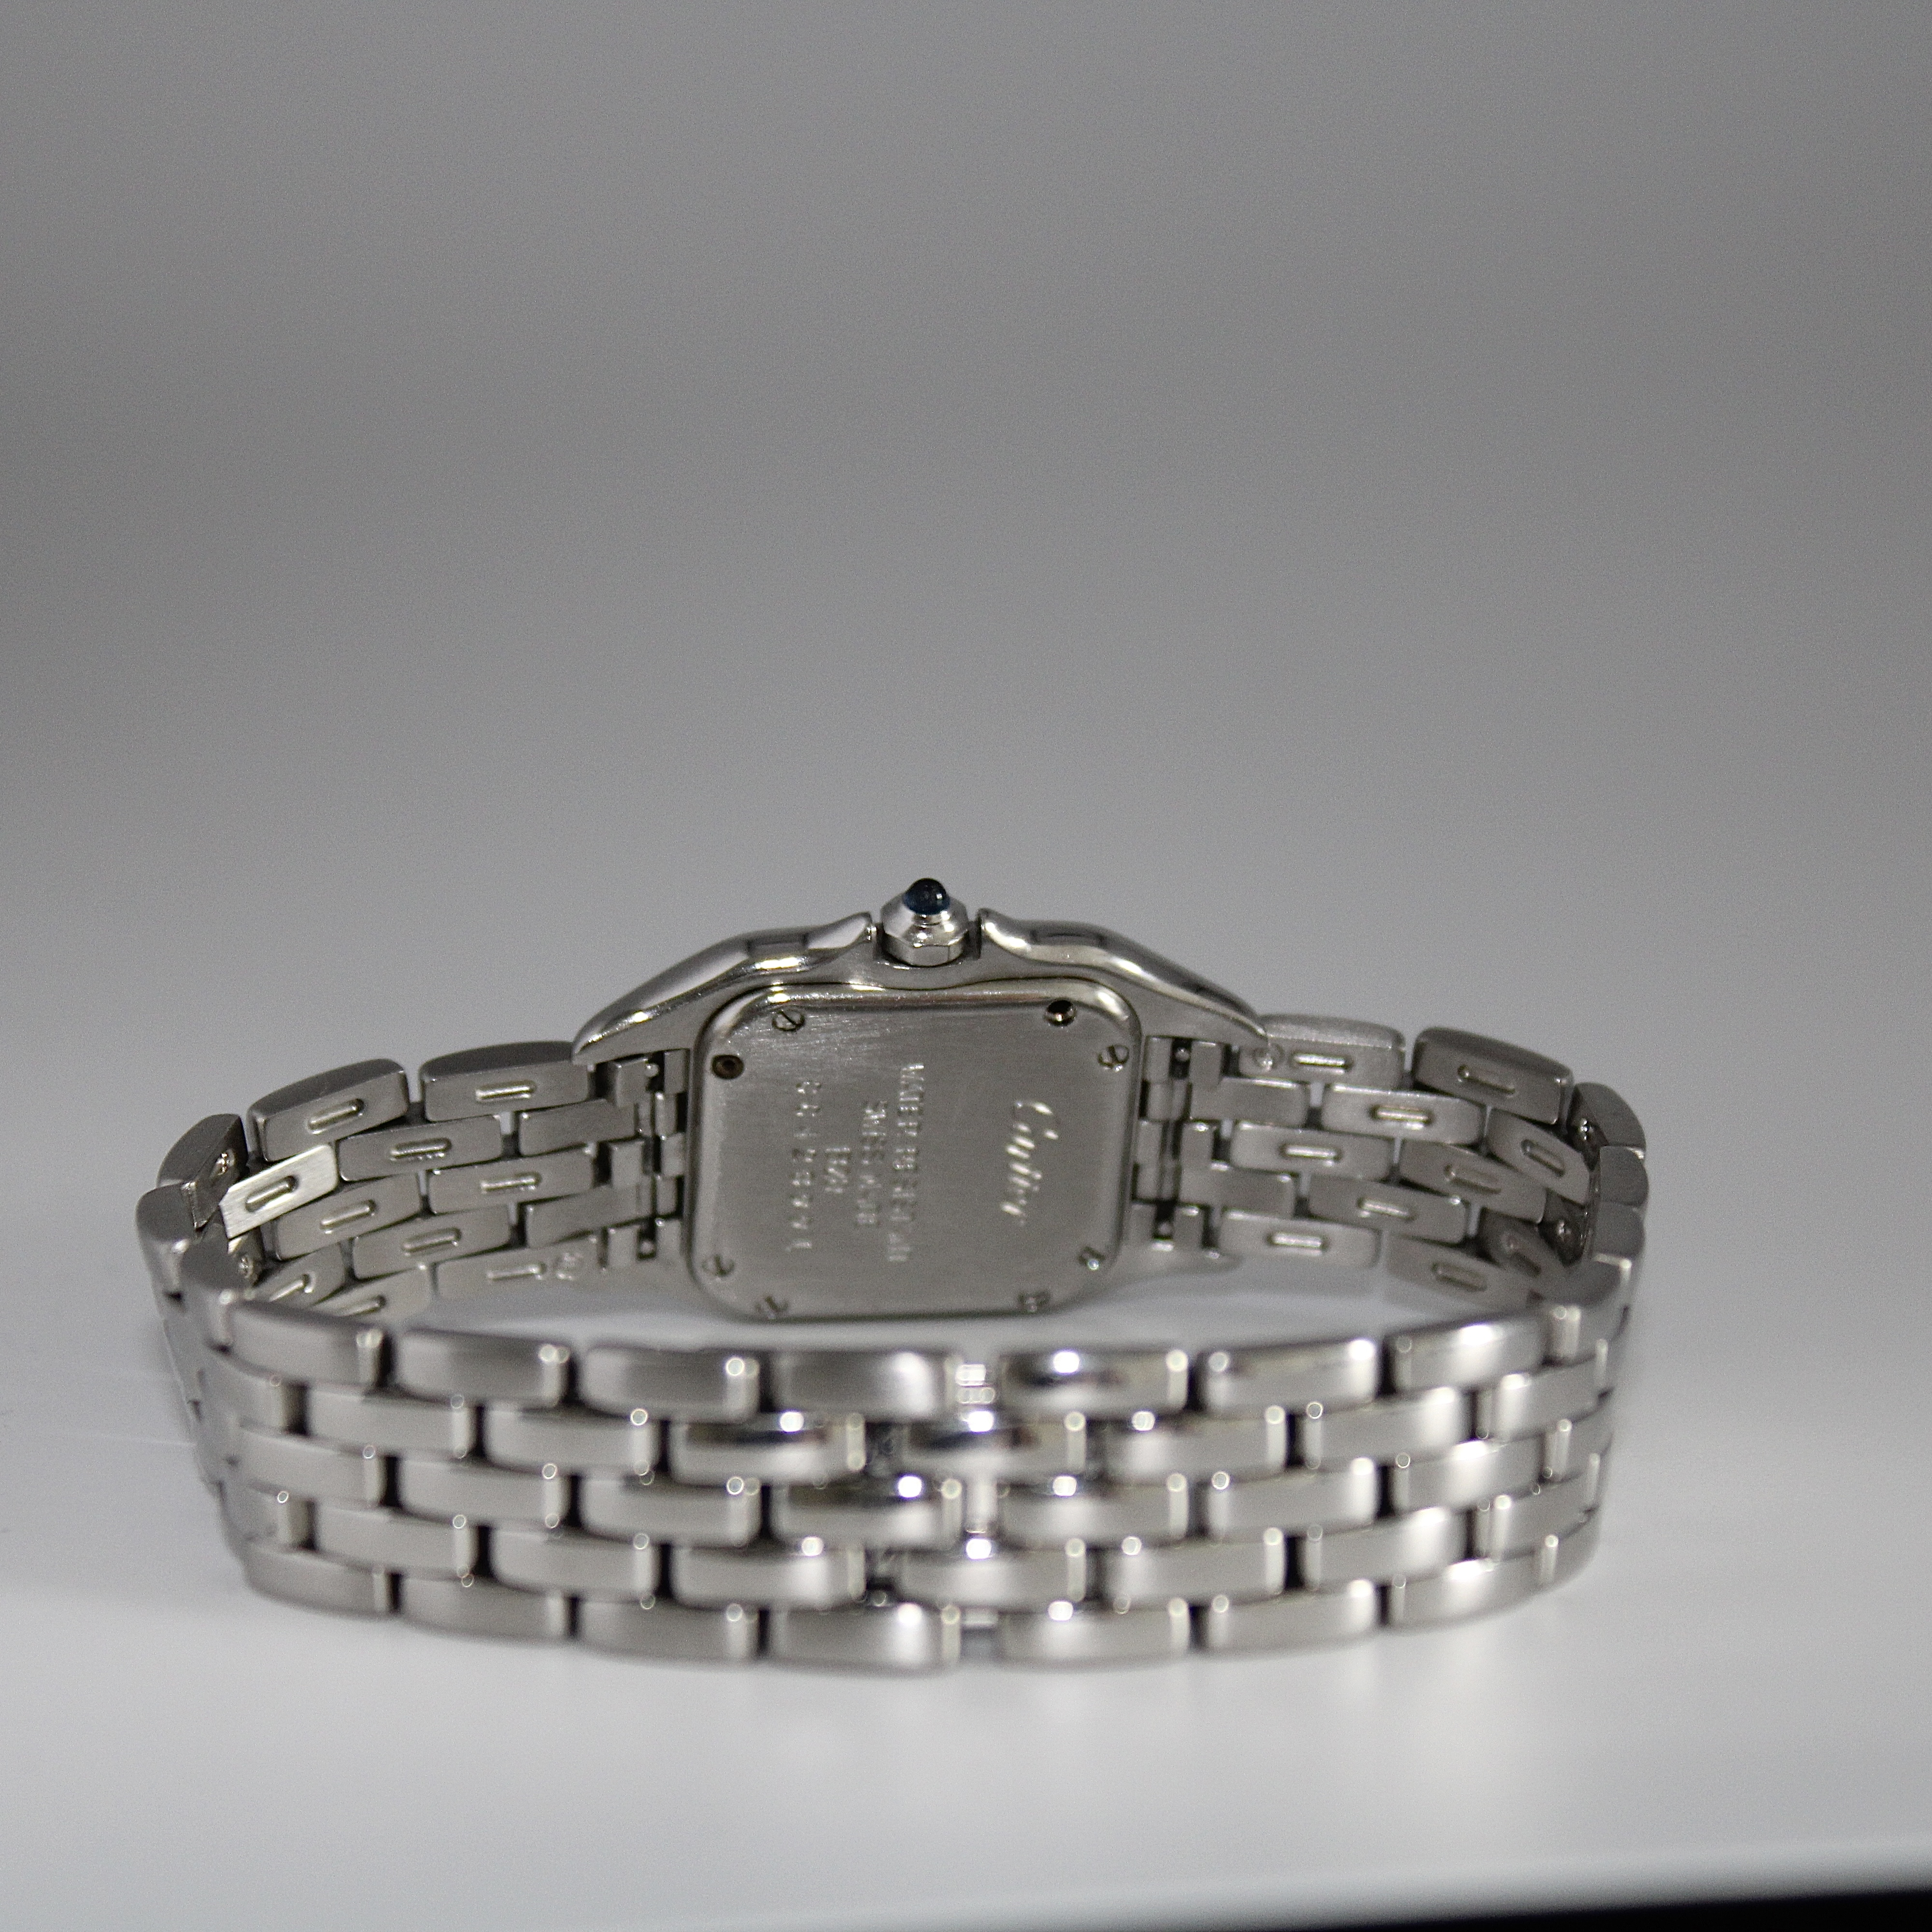 Cartier Panthere ref 1320 - Image 4 of 4